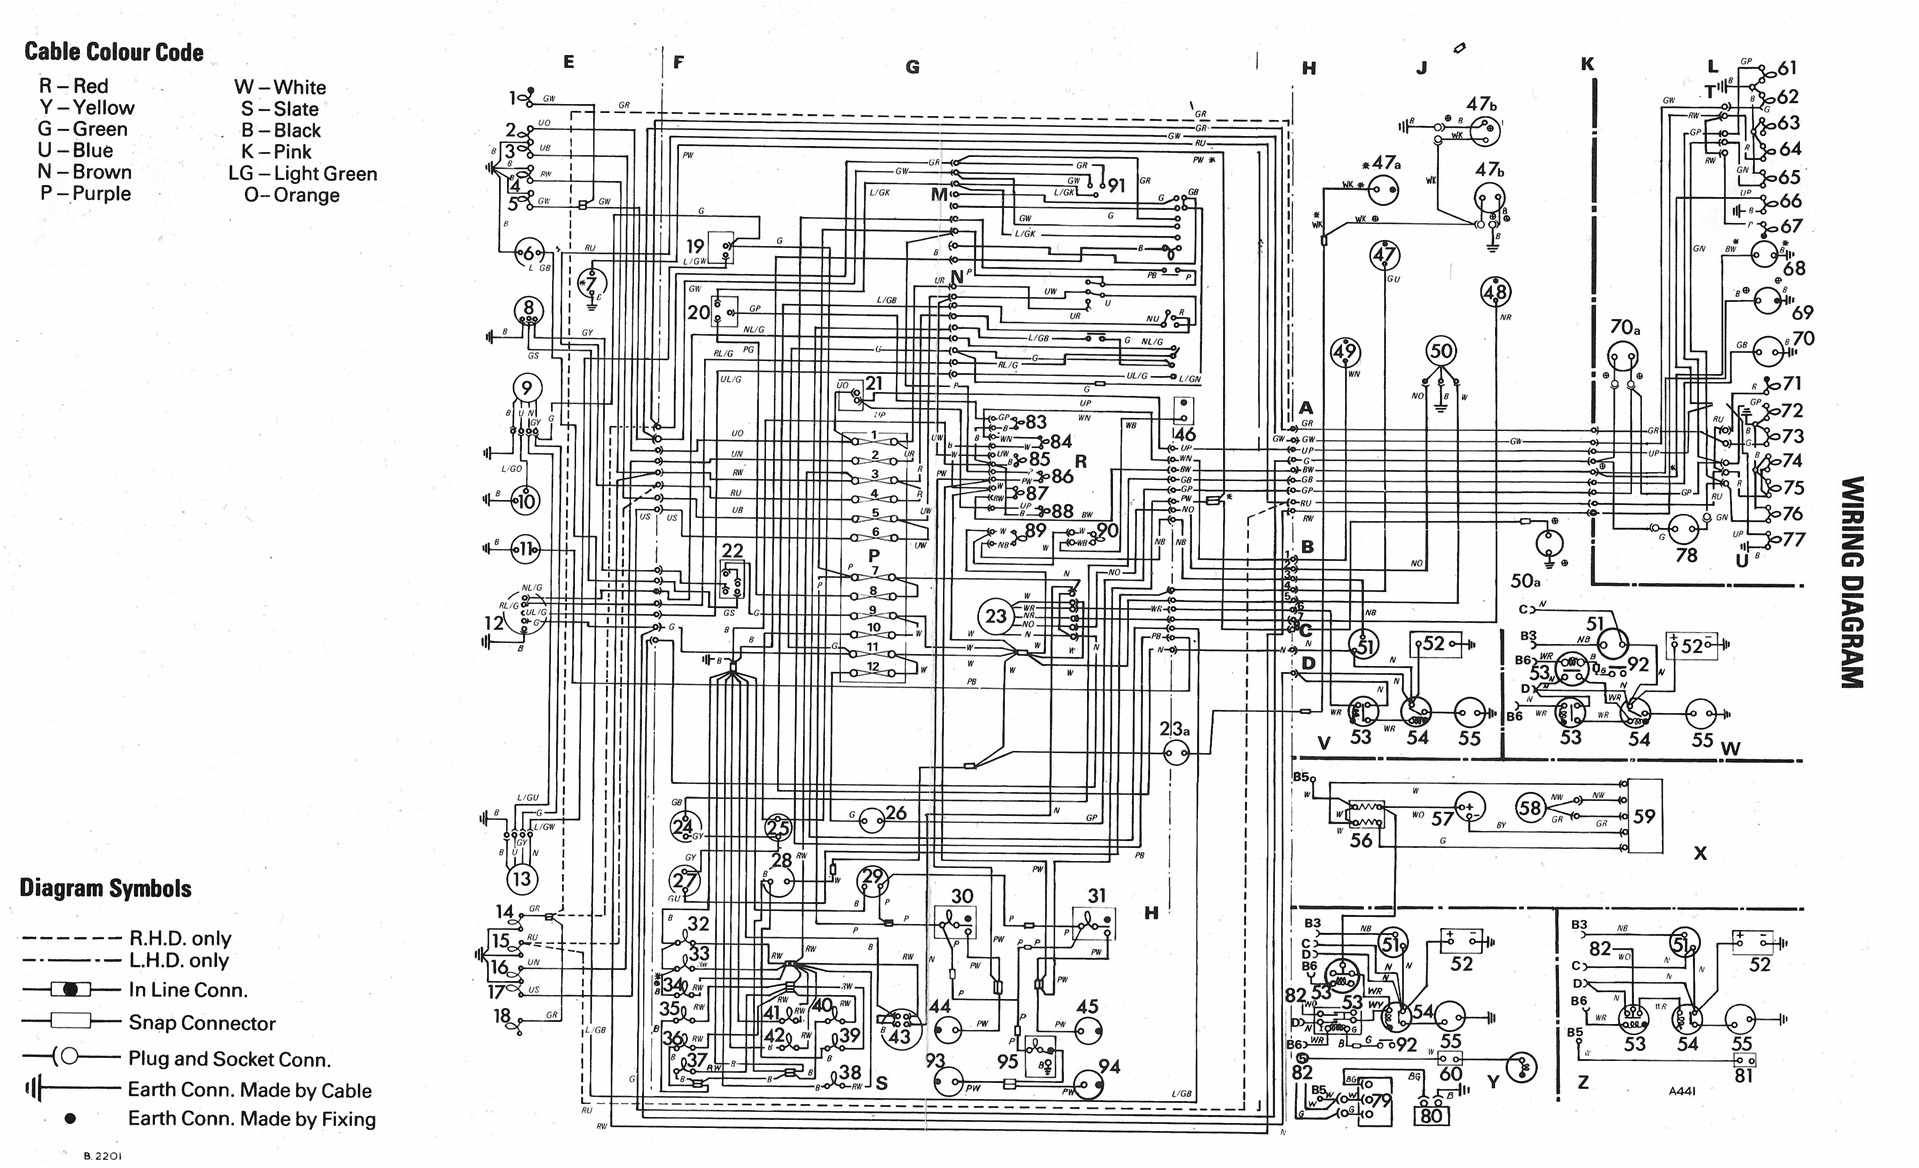 electrical wiring diagram of volkswagen golf mk1 mk1 volkswagen Chevrolet Hhr Wiring Diagram